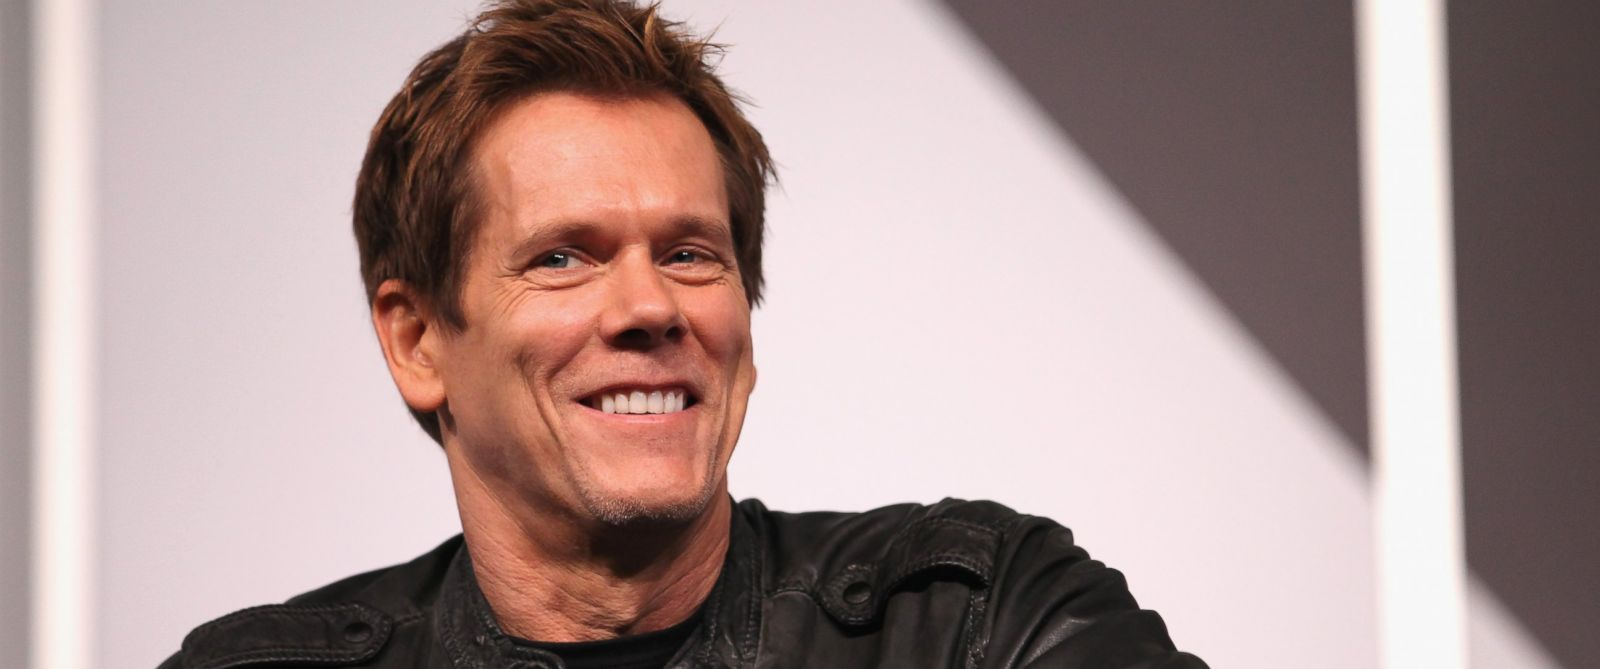 """PHOTO: Actor Kevin Bacon speaks onstage at """"6 Degrees of Kevin Bacon: A Social Phenomenon Turns 20"""" during the 2014 SXSW Music, Film + Interactive Festival at Austin Convention Center on March 8, 2014."""